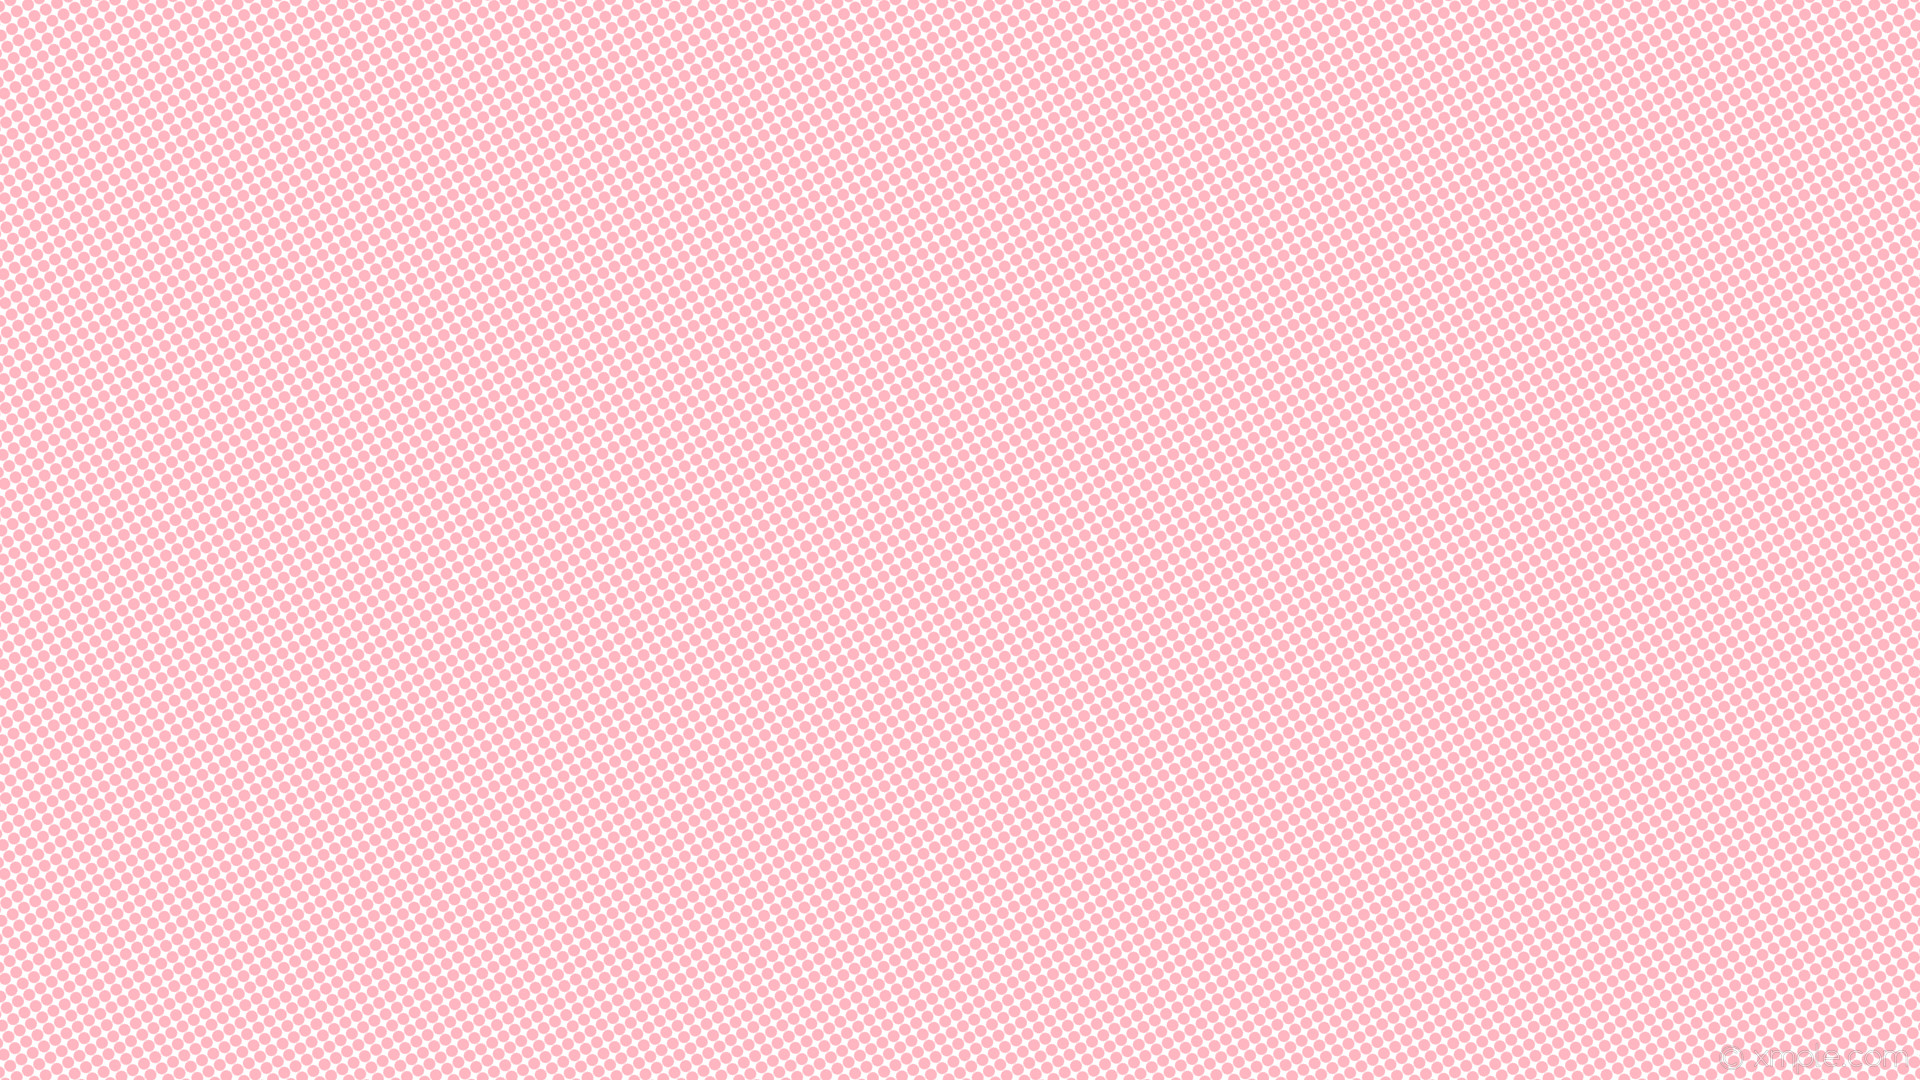 White and light pink wallpaper